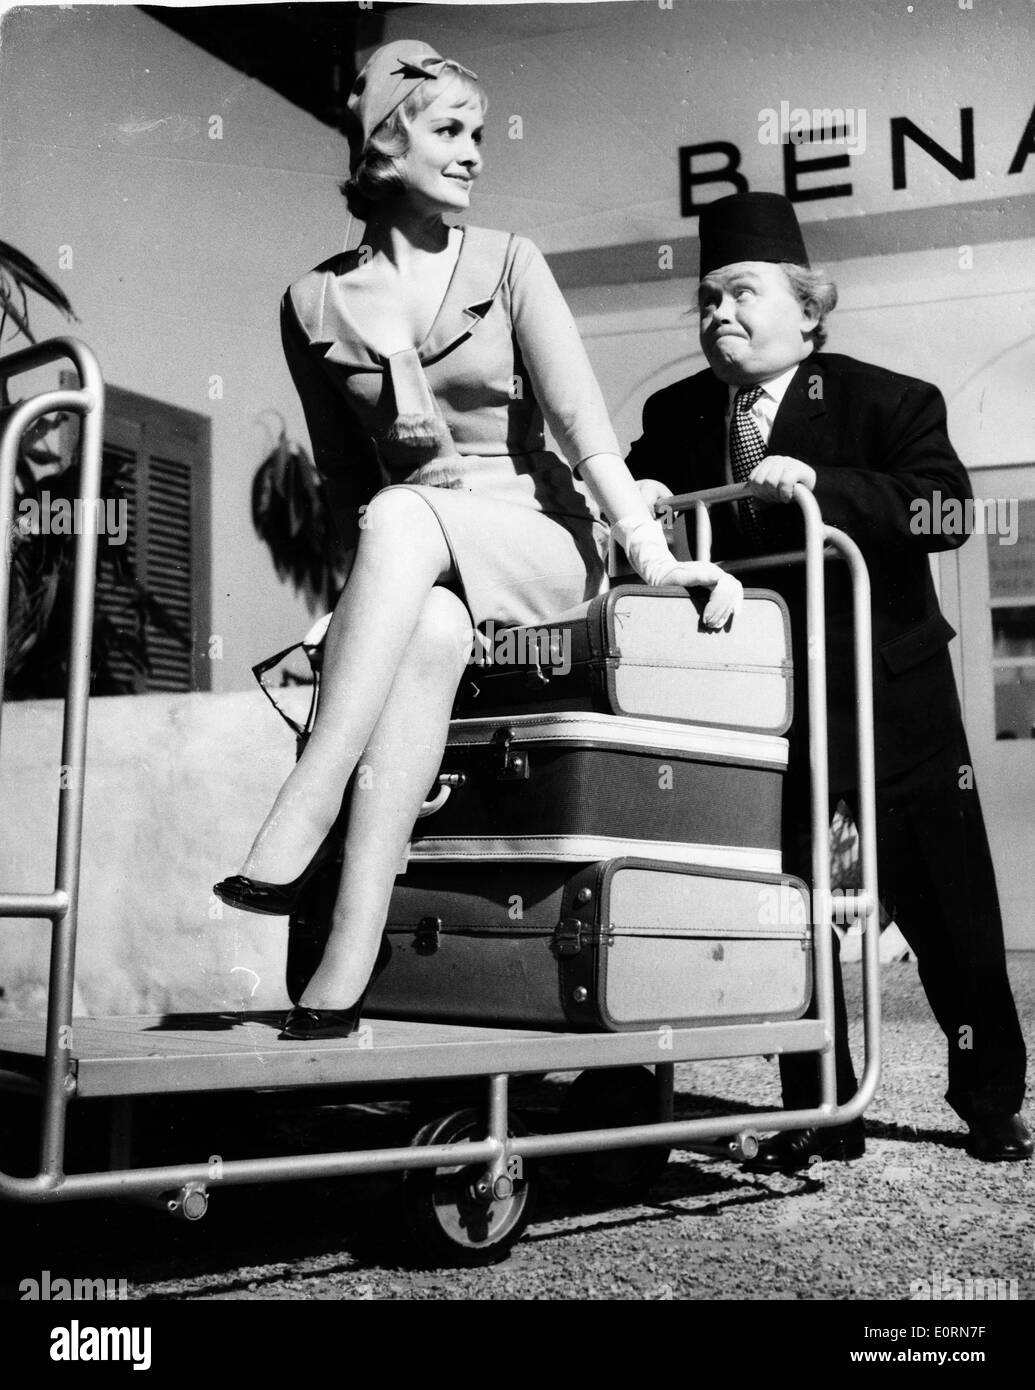 comedian charlie drake and actress sarah branch filming a movie stock photo  royalty free image